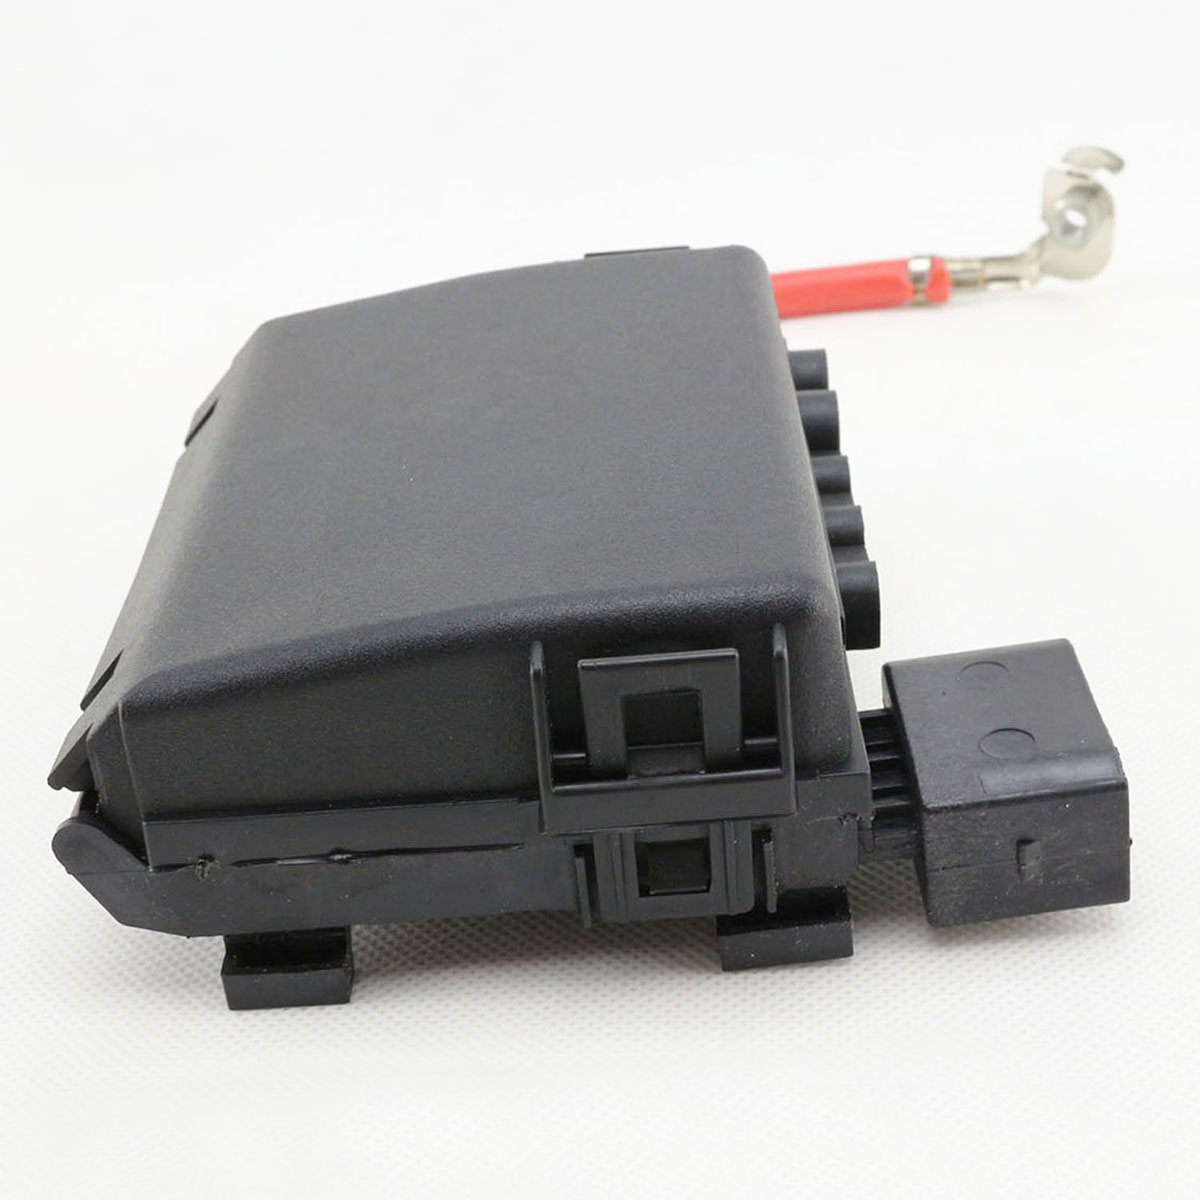 New Battery Terminal Fuse Box Holder for VW Jetta Golf MK4 Bora Beetle new battery terminal fuse box holder for vw jetta golf mk4 bora VW MK4 Sunroof Switch at mifinder.co